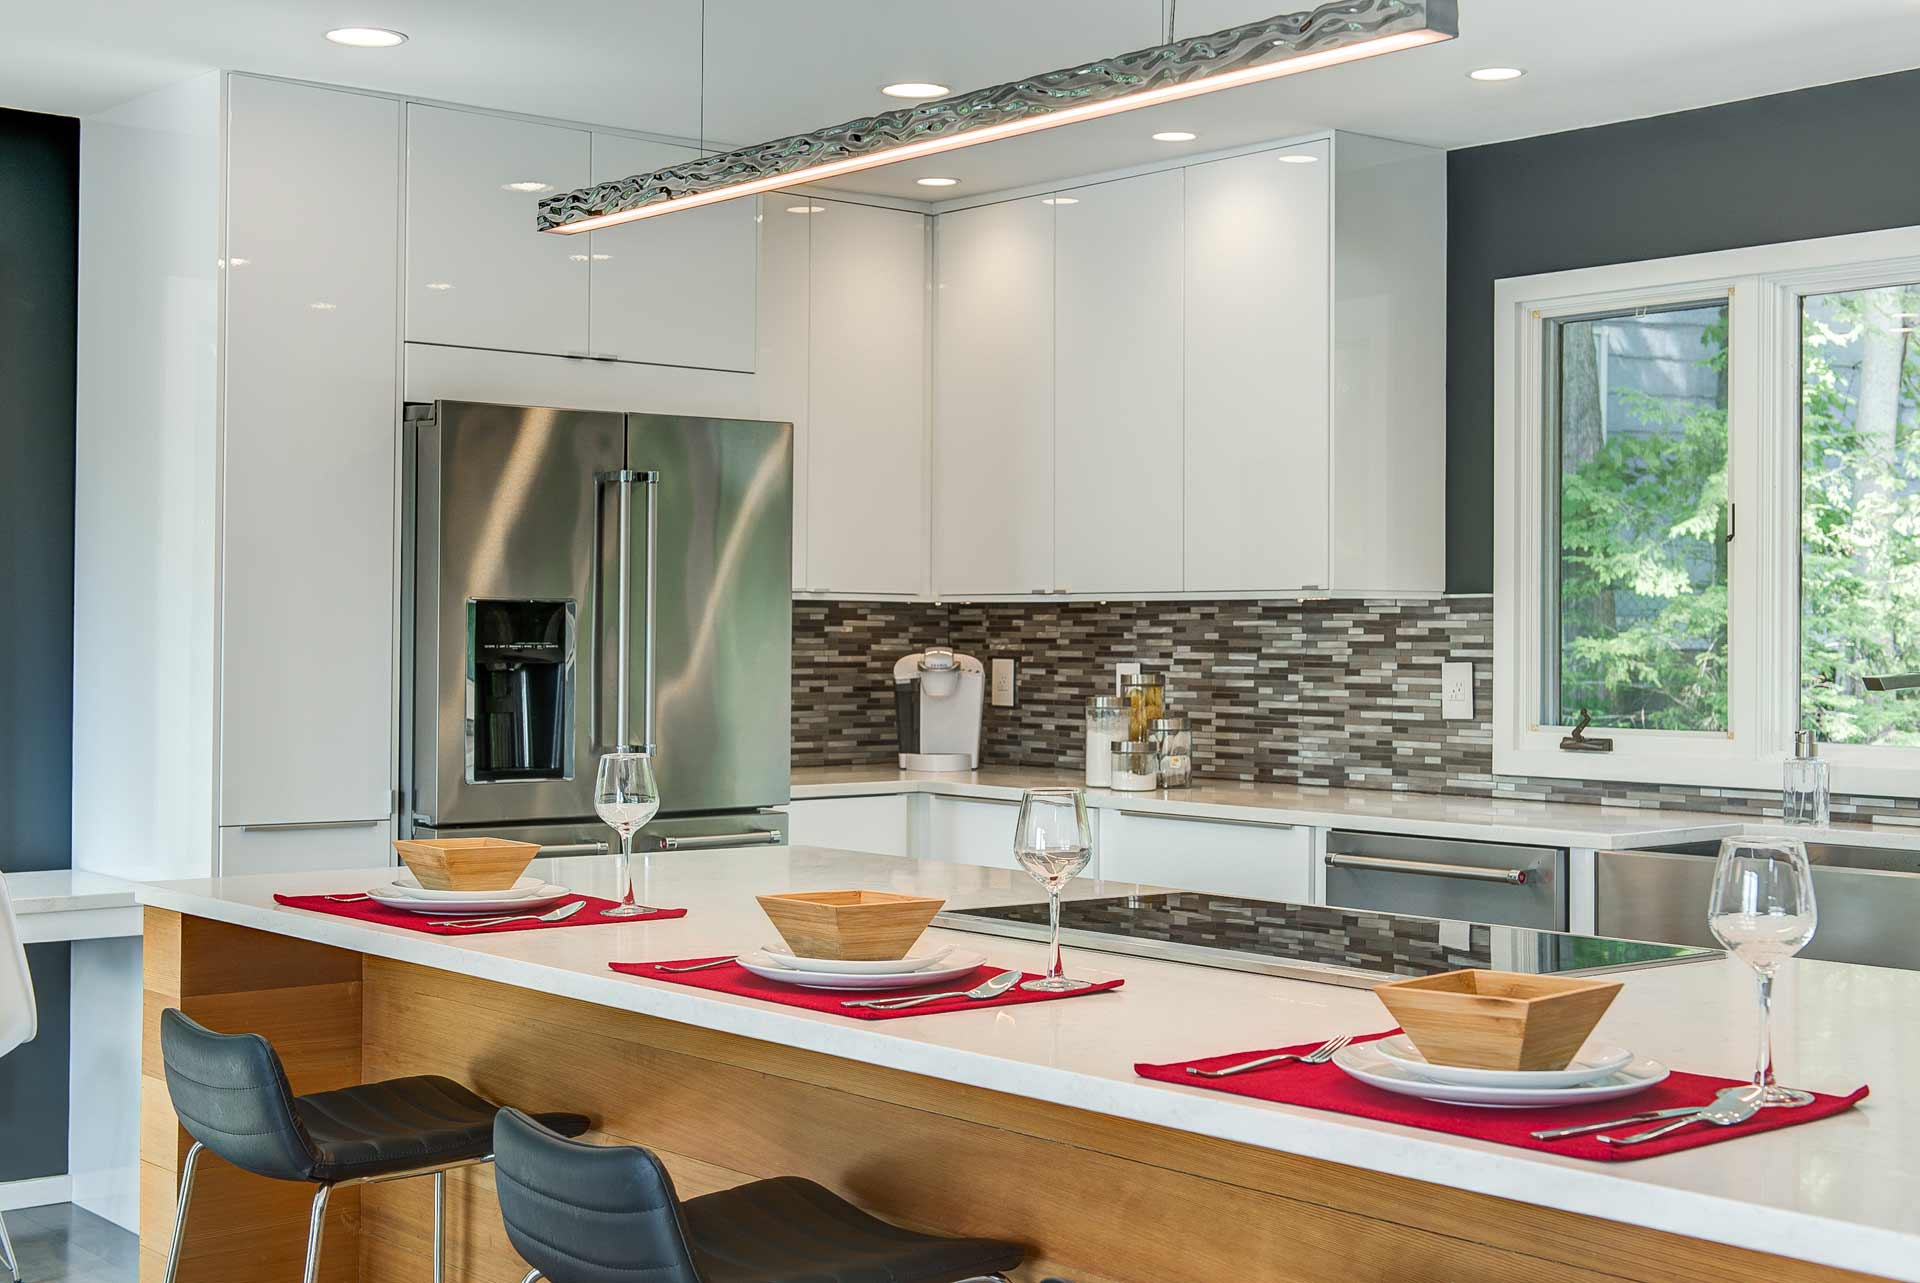 Closeup of kitchen area with place settings/staging - Reef Court Light Renovation - Geist Reservoir - Indianapolis, IN - Photo by Structured Photography